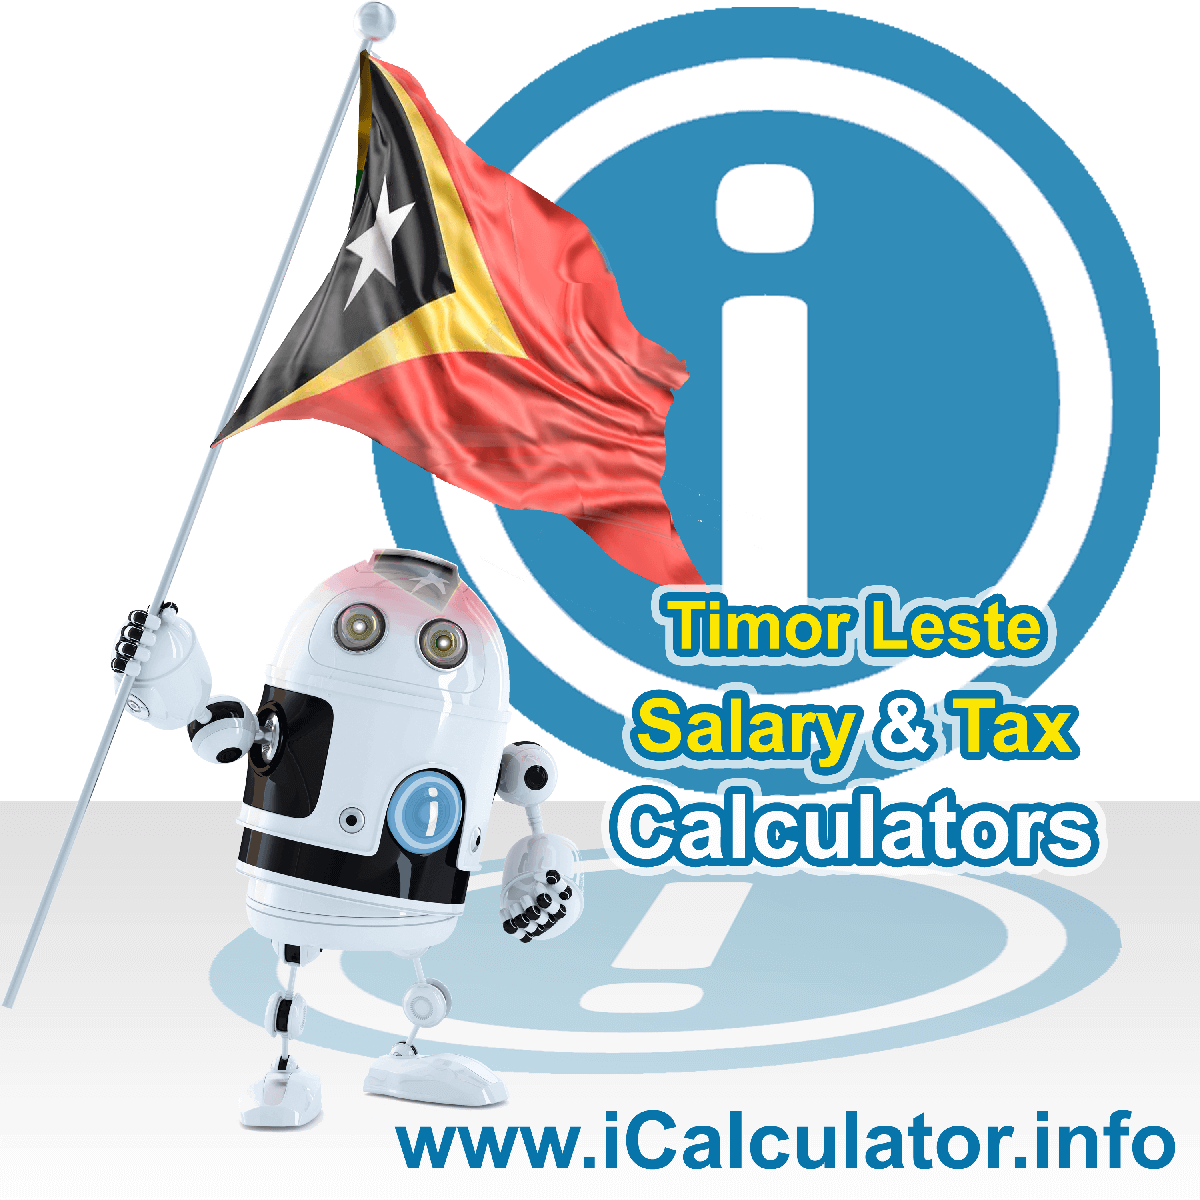 Timor Leste Wage Calculator. This image shows the Timor Leste flag and information relating to the tax formula for the Timor Leste Tax Calculator